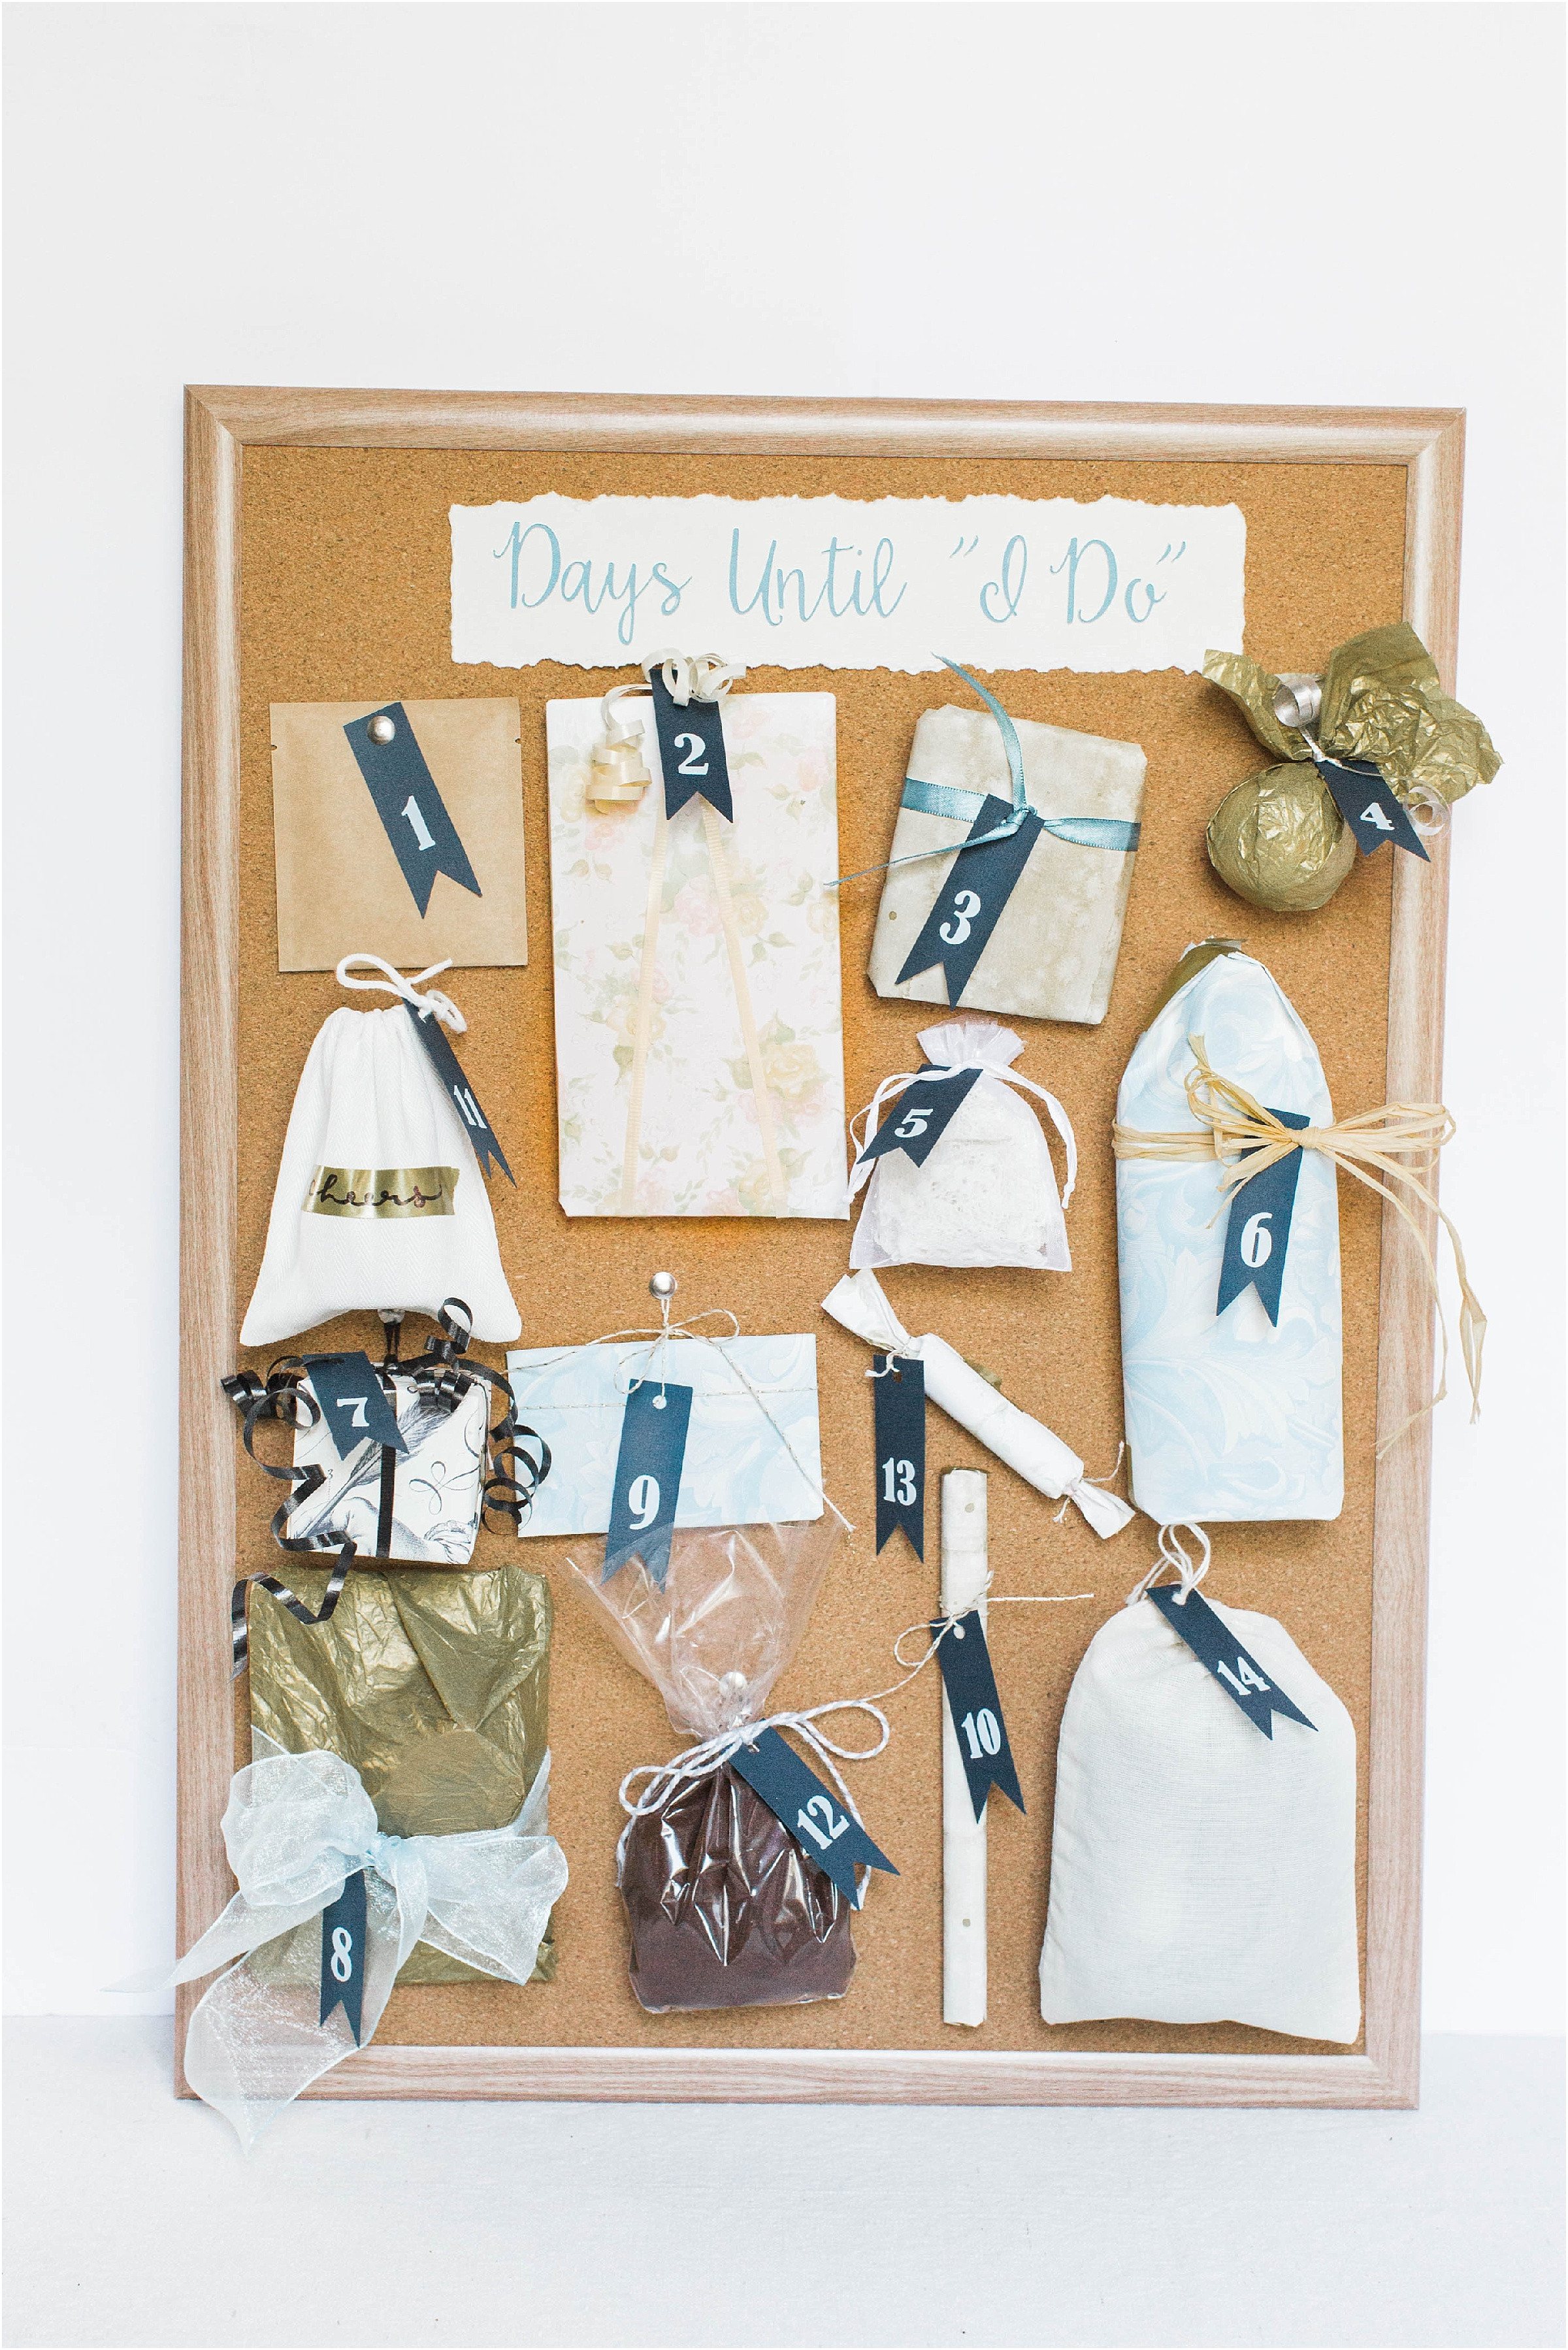 Best ideas about DIY Wedding Gift . Save or Pin How to DIY a Wedding Advent Calendar Now.